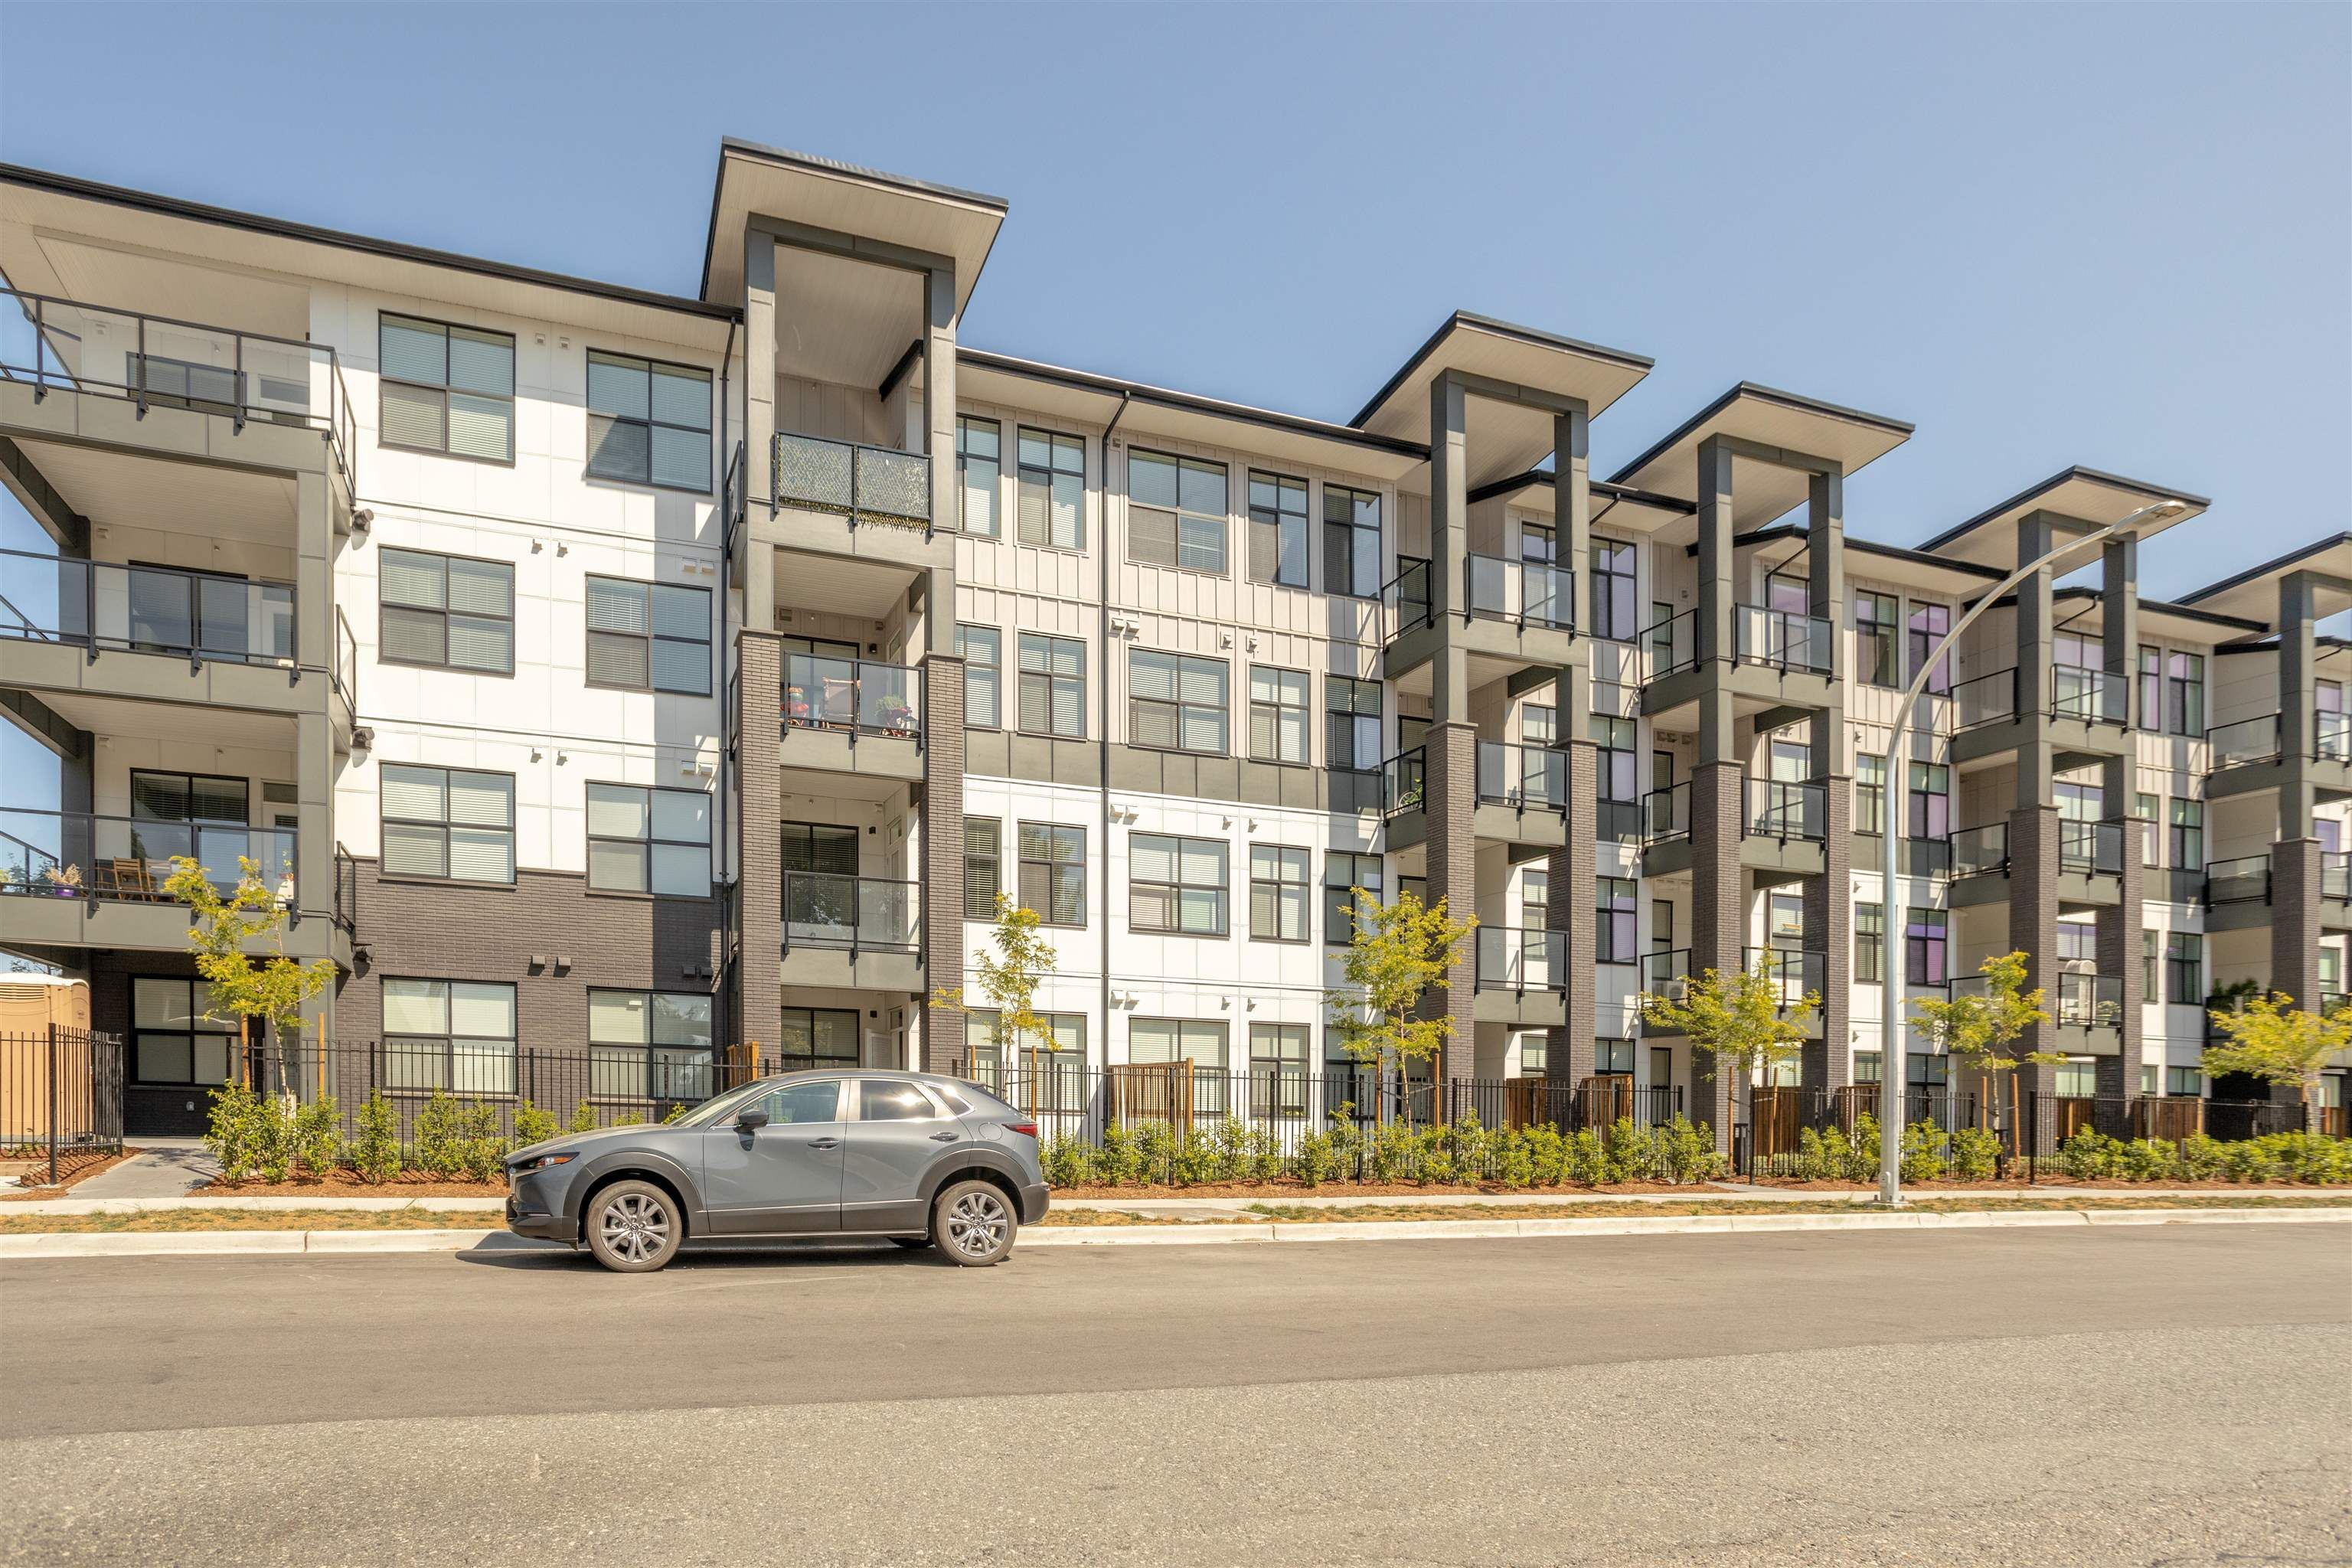 """Main Photo: 406 2120 GLADWIN Road in Abbotsford: Central Abbotsford Condo for sale in """"THE ONYX AT MAHOGANY"""" : MLS®# R2614339"""